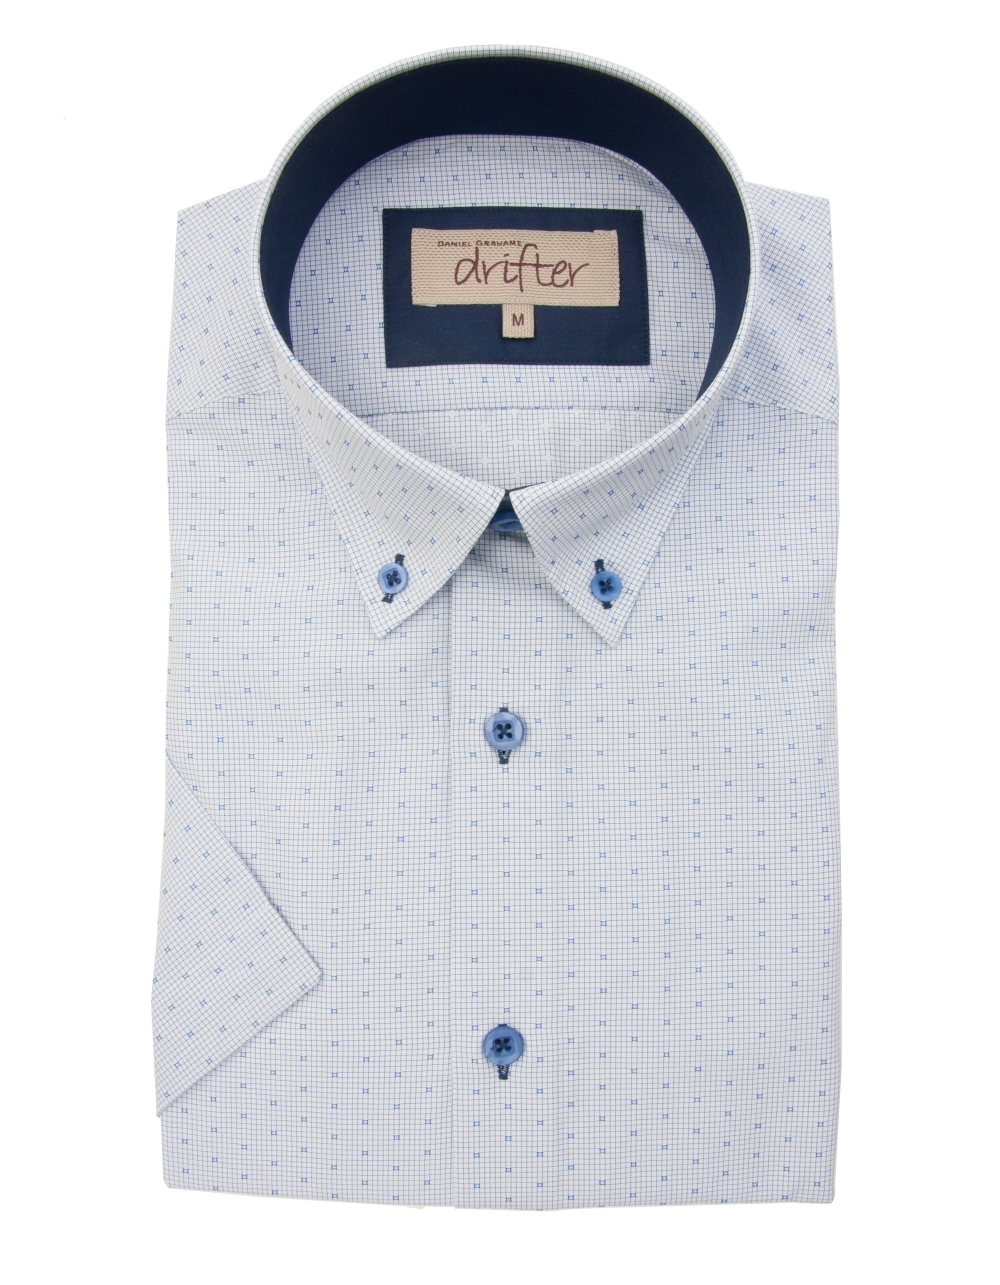 Daniel Grahame blue checked shirt